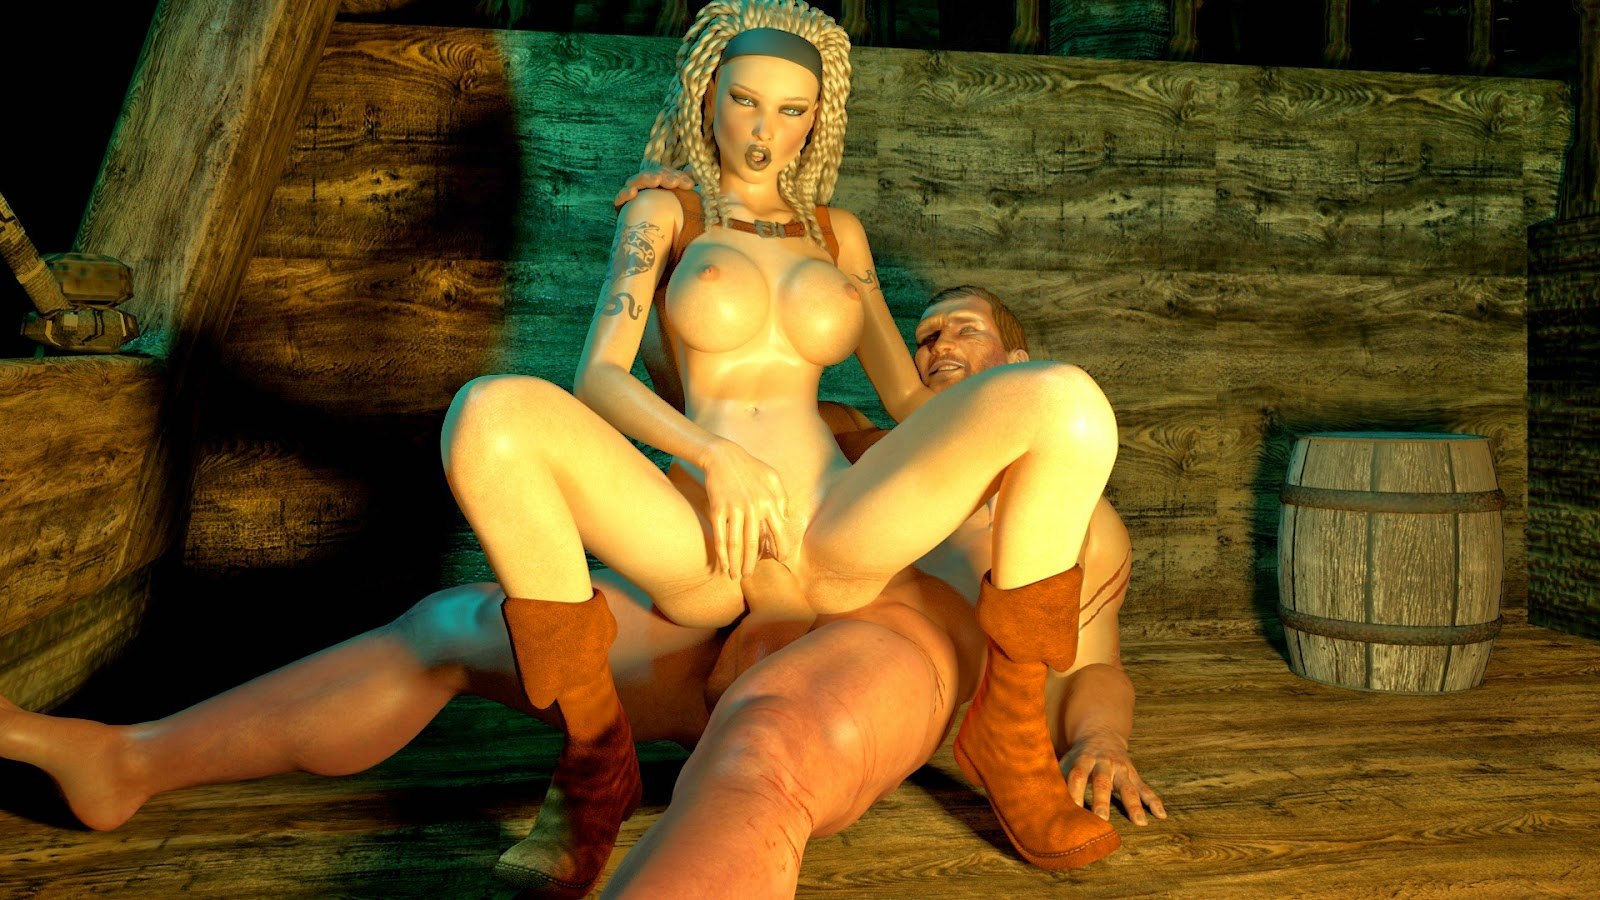 Mmo sex games naked scene